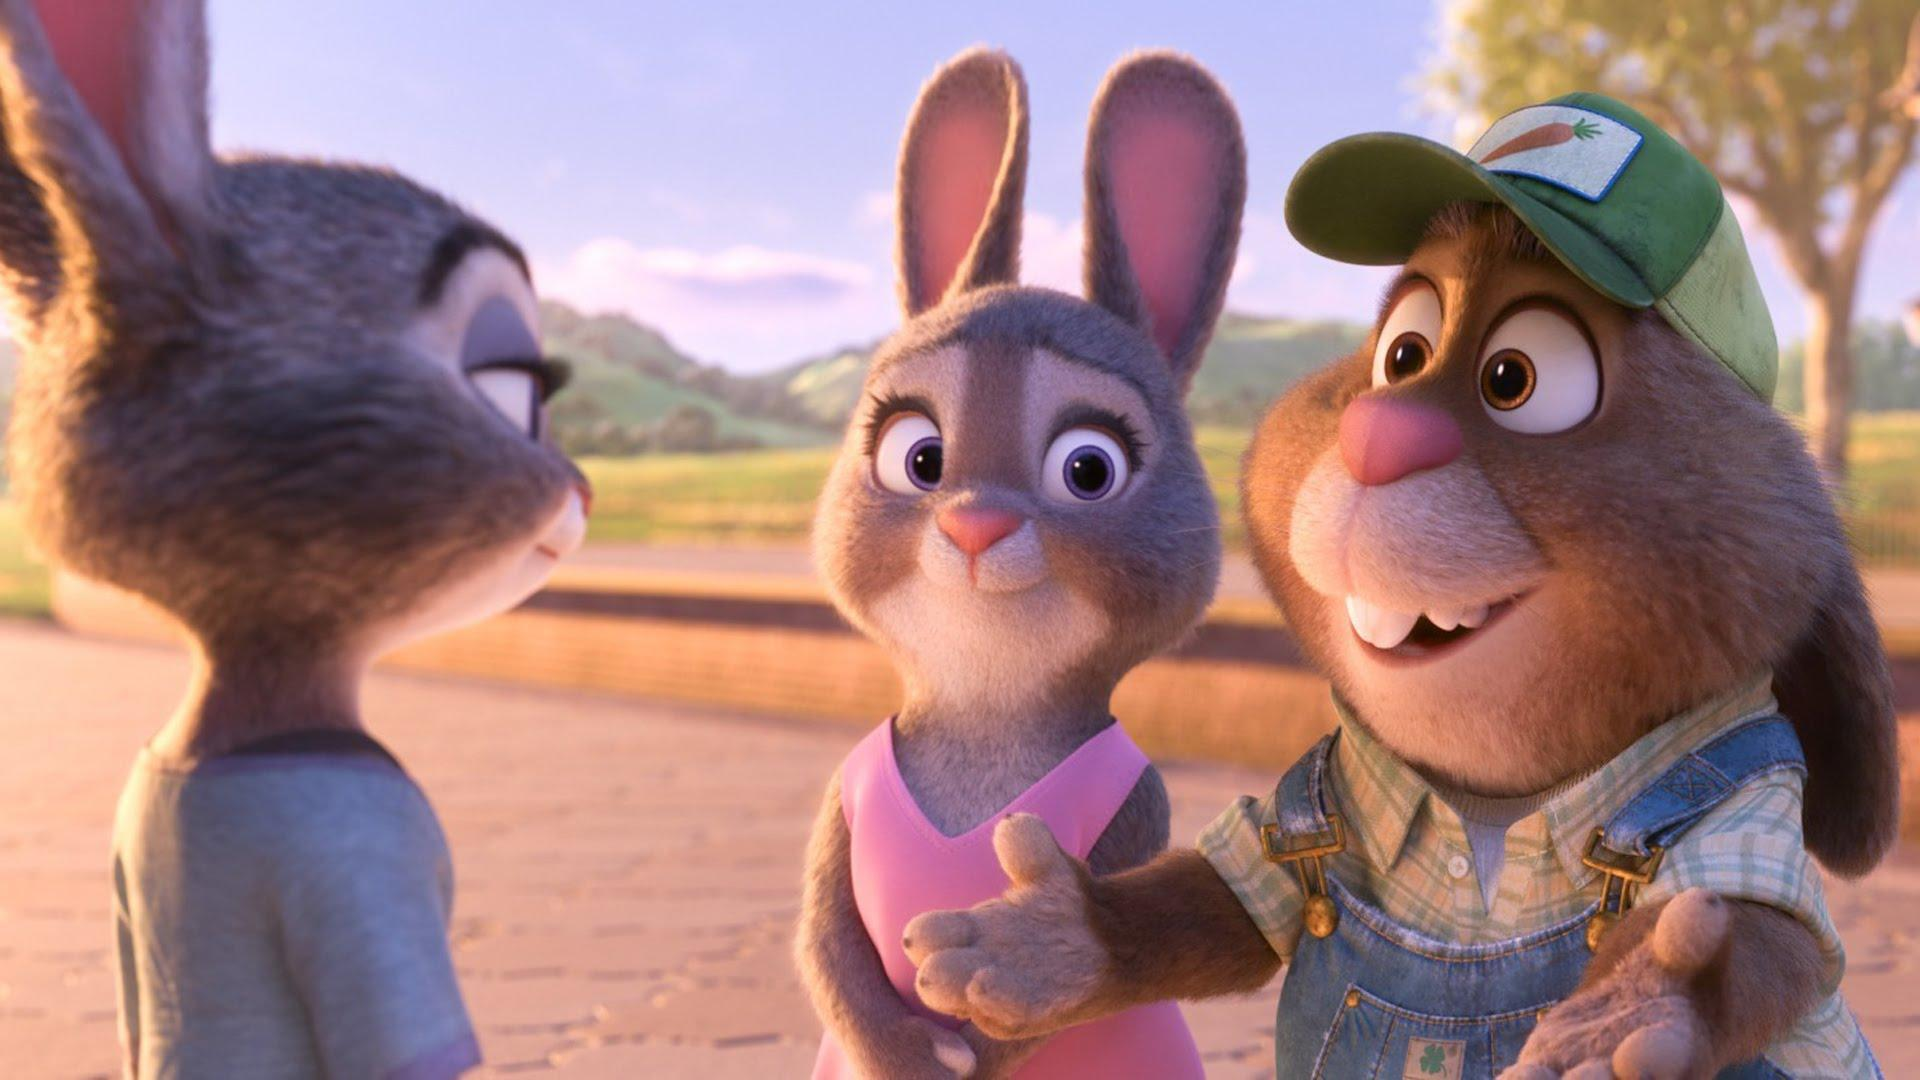 How many siblings does Judy have?